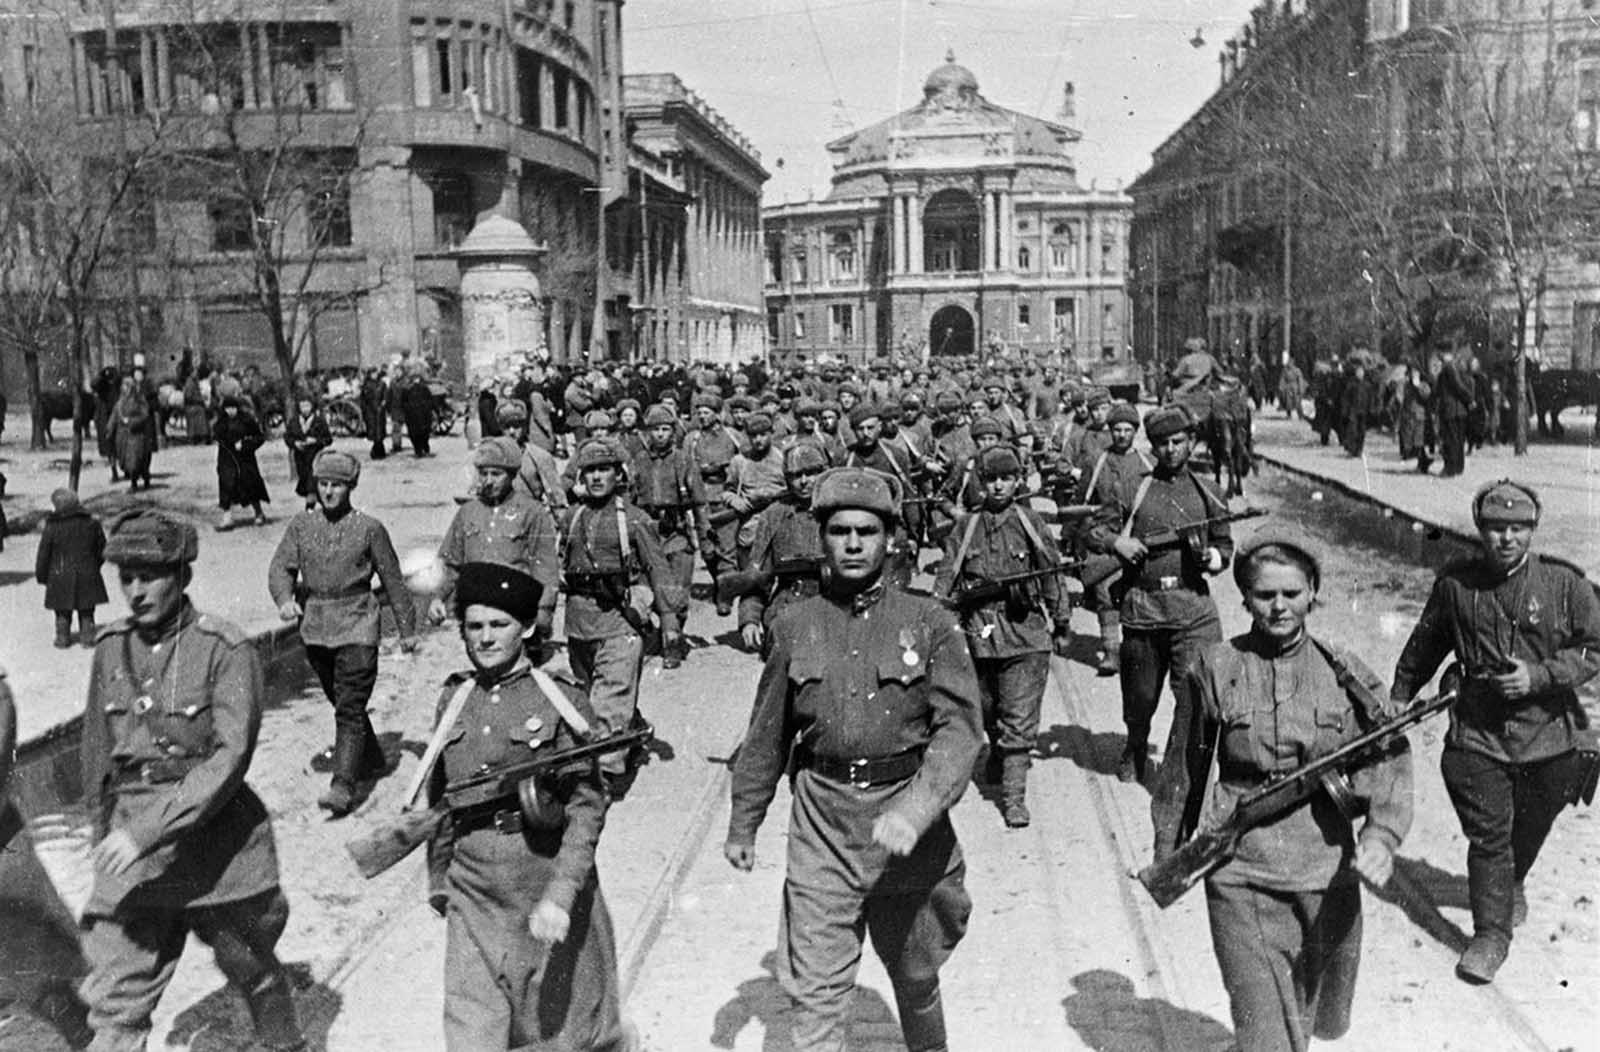 62nd Stalingrad Army on the streets of Odessa (The 8th Guard of the Army of General Chuikov on the streets of Odessa) in April of 1944. A large group of Soviet soldiers, including two women in front, march down a street.